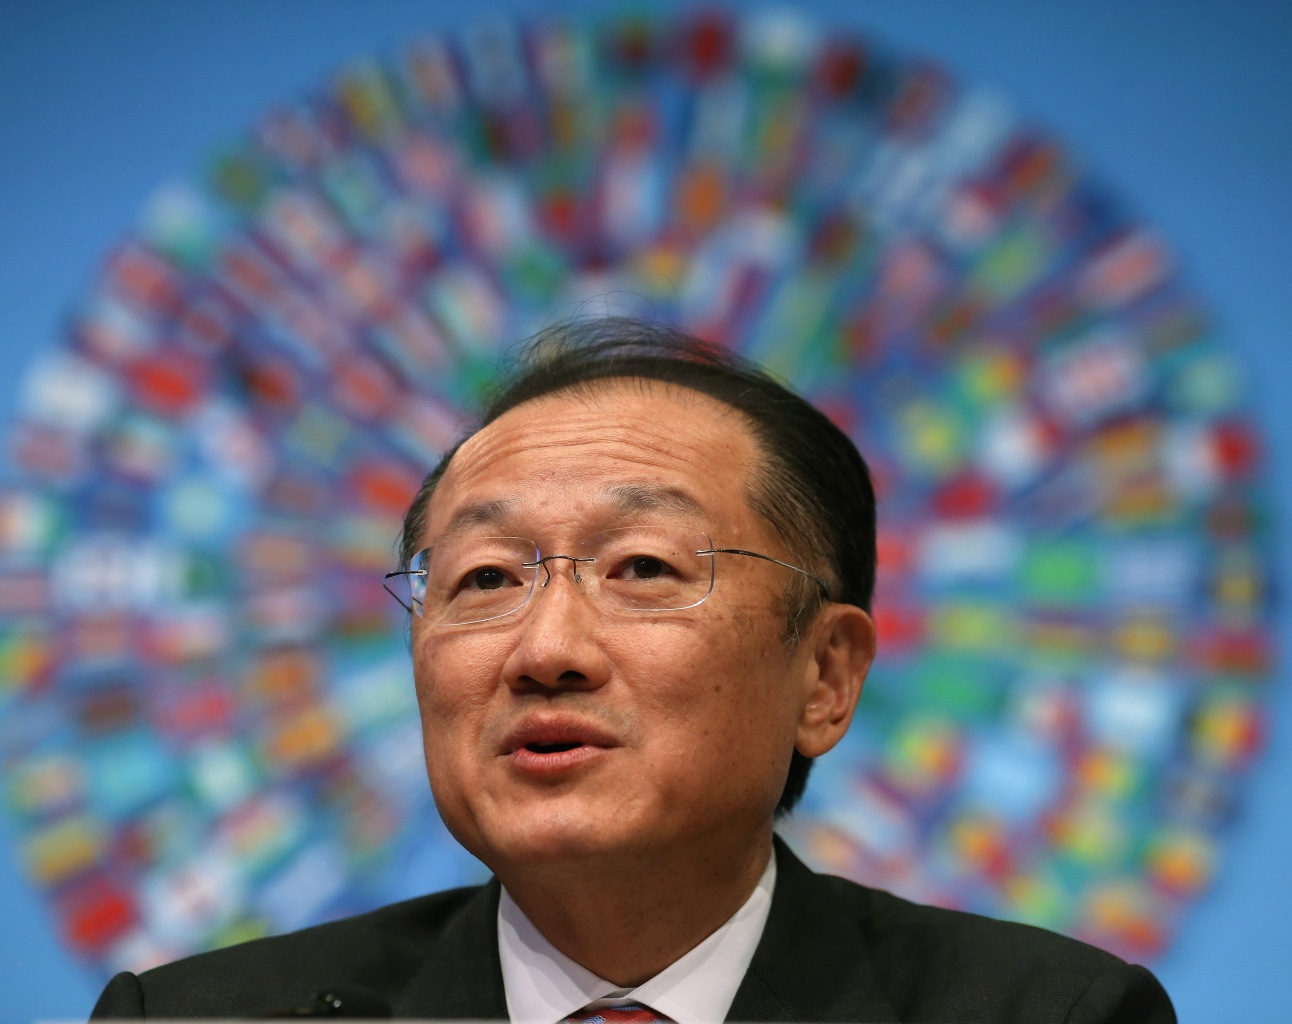 WASHINGTON, DC - APRIL 10: World Bank Group President Jim Yong Kim speaks during a media briefing at the IMF Headquarters, on April 10, 2014 in Washington, DC. Mr. Kim spoke about their agenda for the 2014 Spring Meetings and talked about the data revolution. (Photo by Mark Wilson/Getty Images)